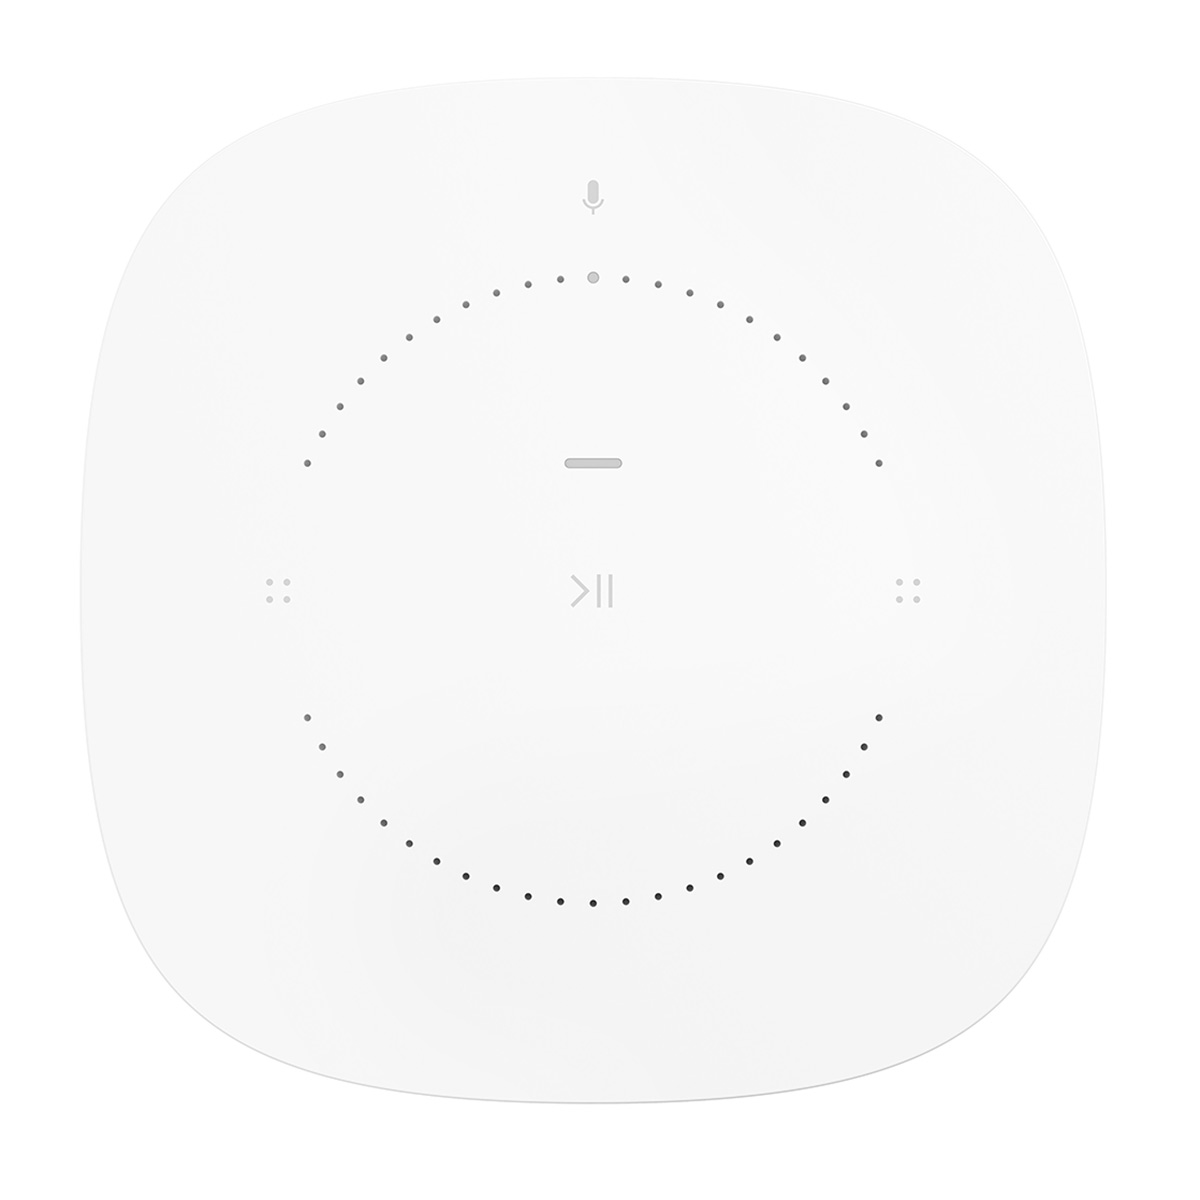 Sonos-Two-Room-Set-with-Sonos-One-Gen-2-Smart-Speaker-with-Alexa-Voice-Control thumbnail 18